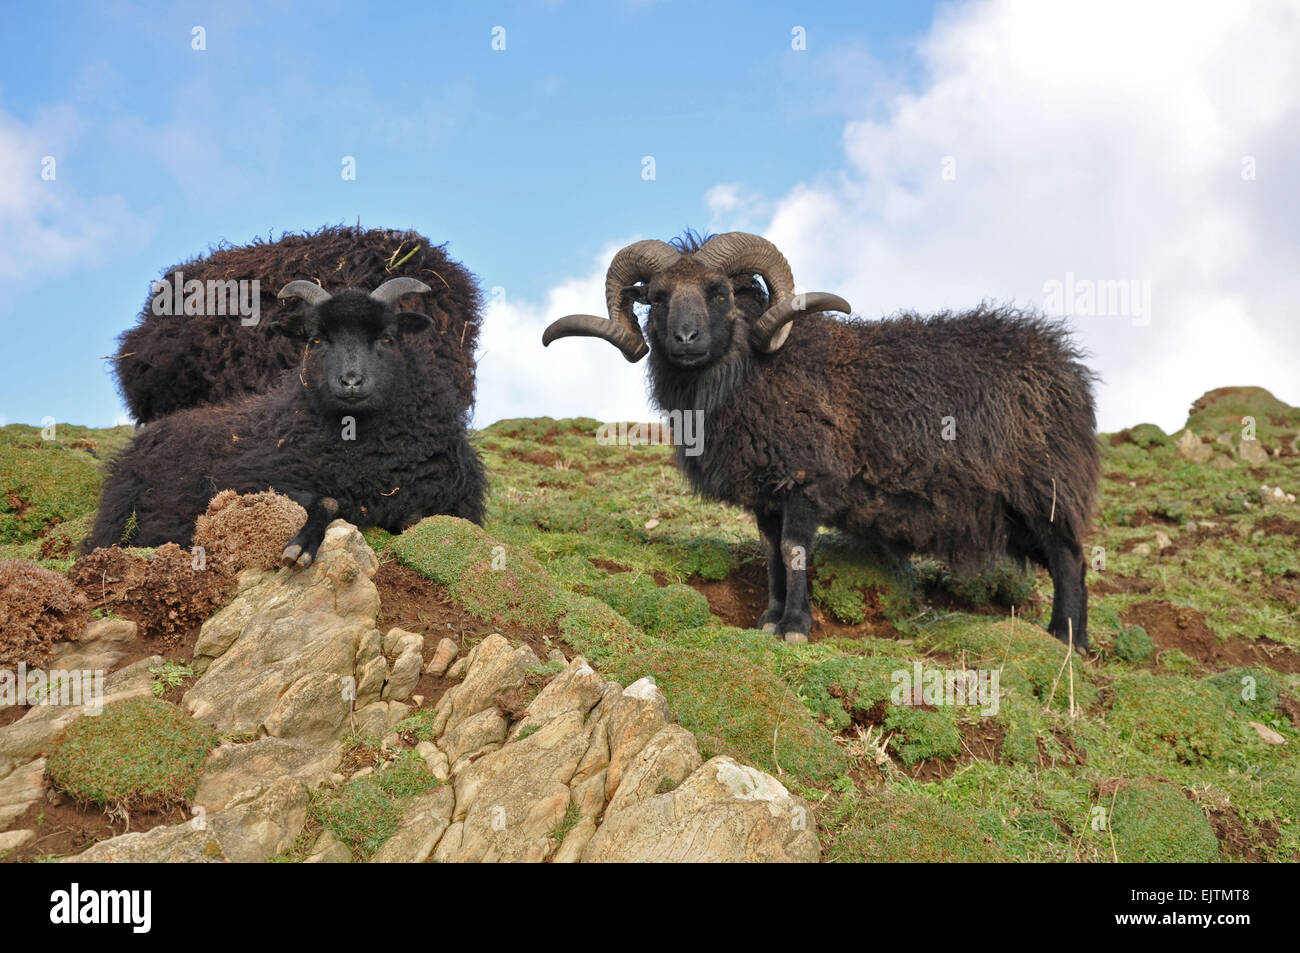 Hebridean sheep, Known as a hardy breed this animal lives on the wild coast of Baggy Point at Croyde, North Devon, - Stock Image